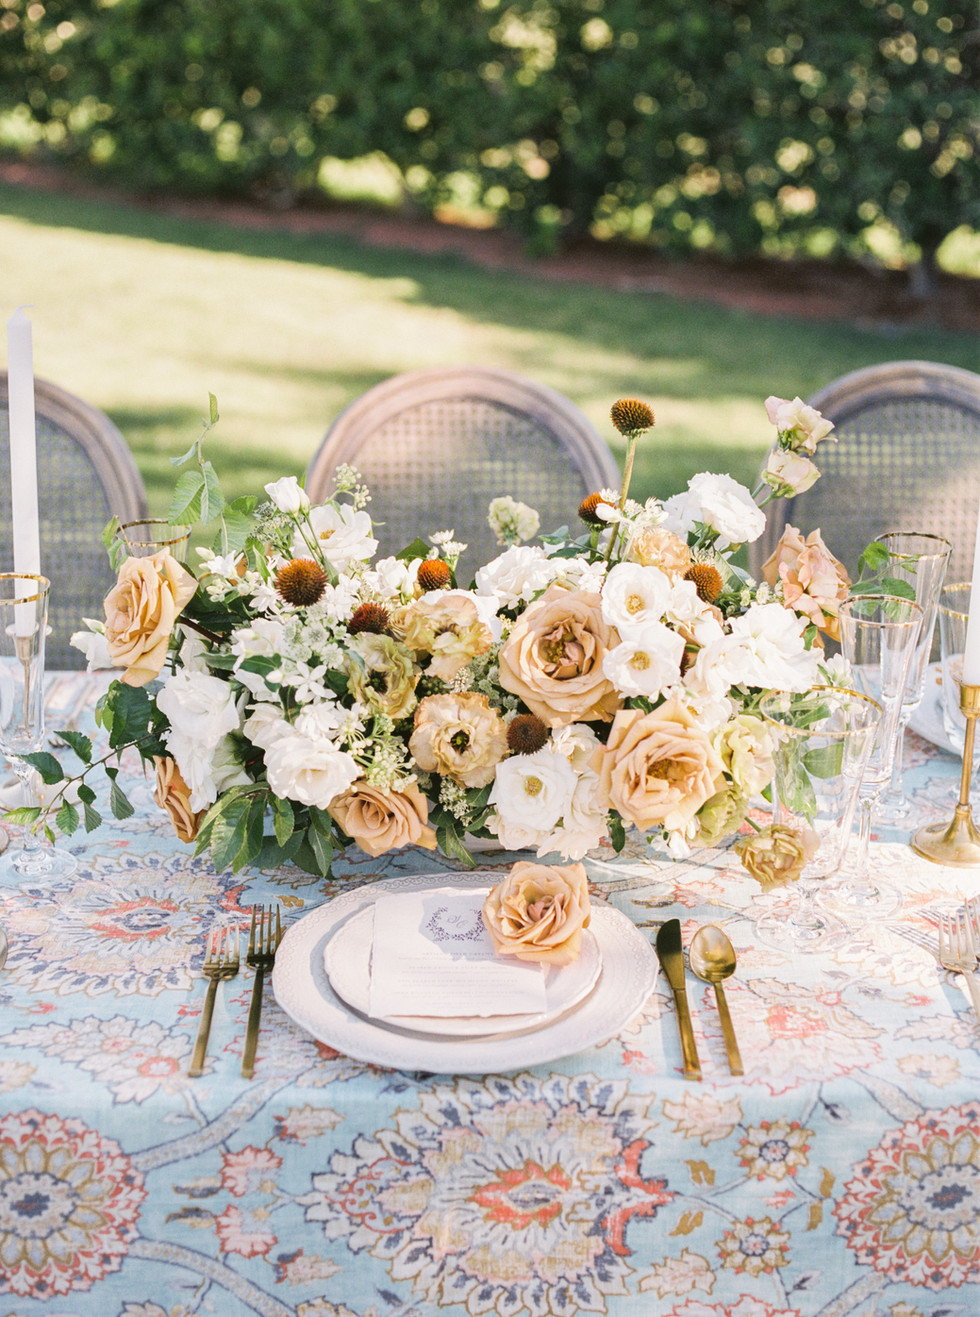 Whimsical summer centerpiece with Toffee roses. Photo: Lianna Marie